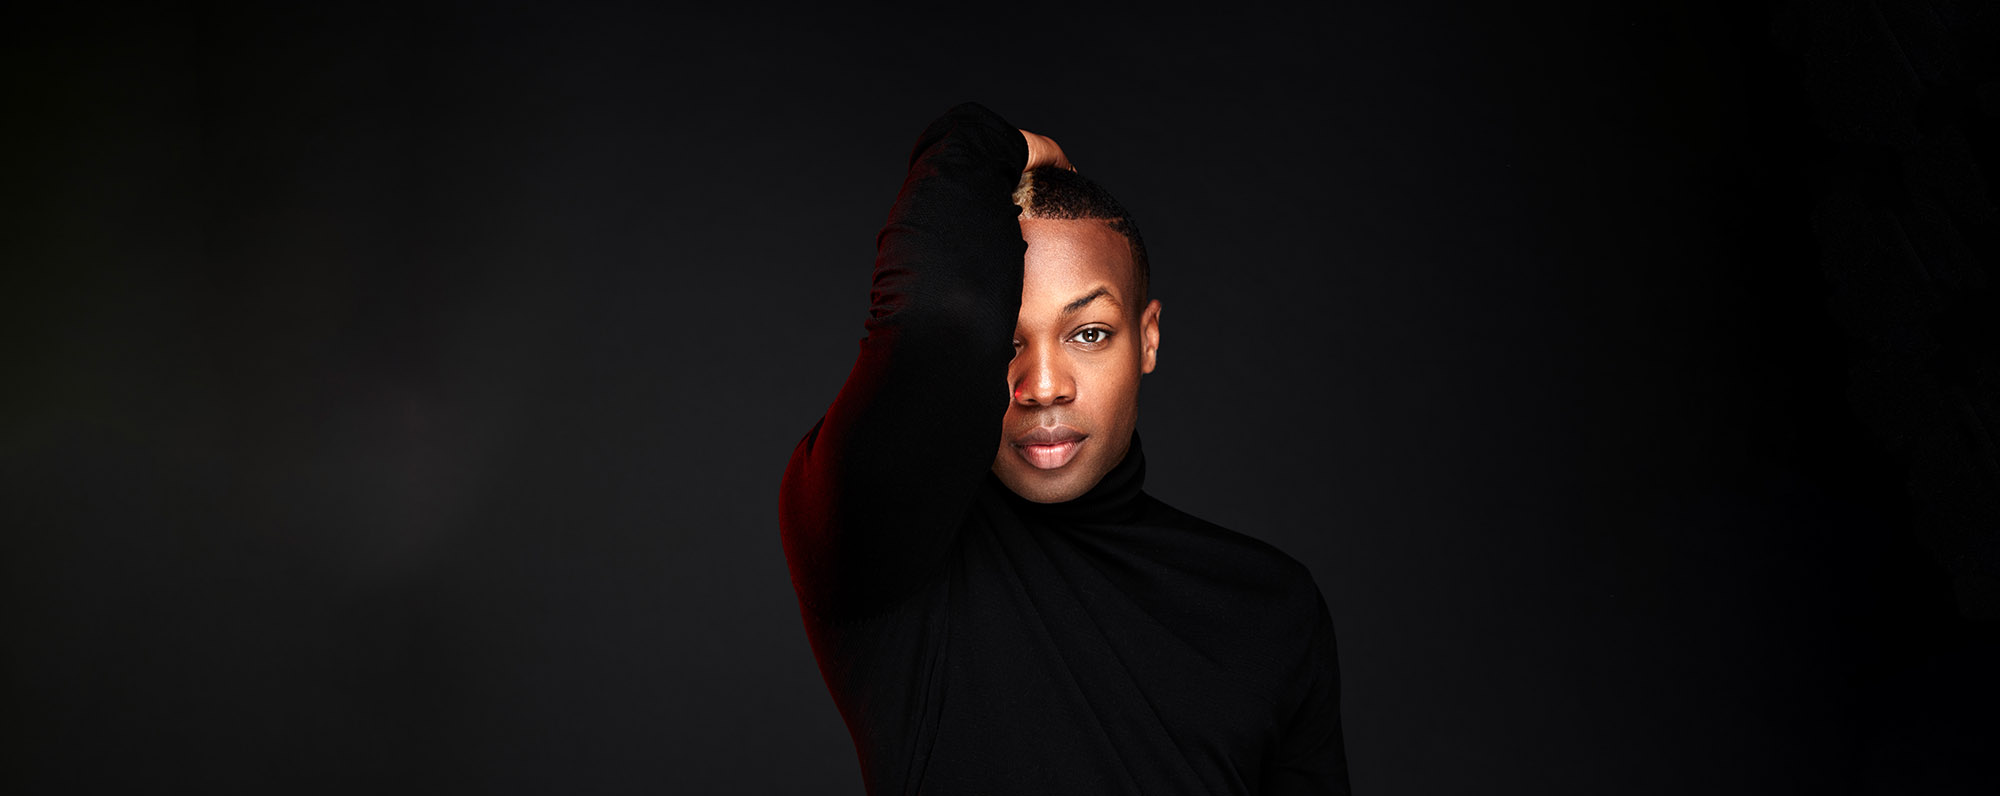 Todrick Hall Added To Main Stage Line-Up For FABULOSO Pride In The Park On Sunday 2nd August 2020